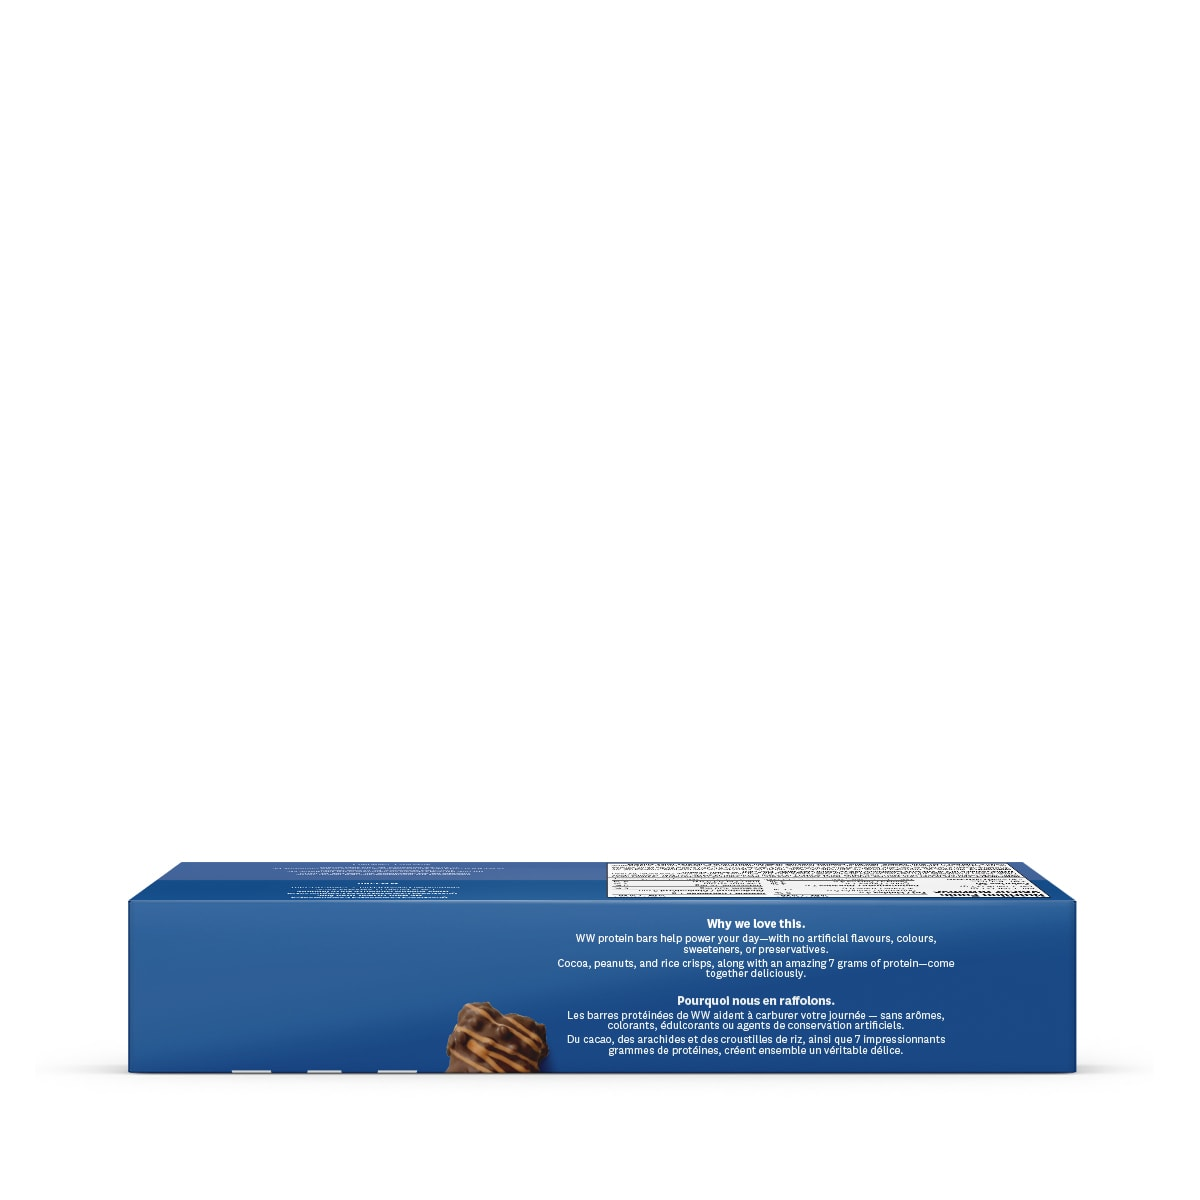 Chocolate Peanut Butter Baked Protein Bar - side 1 of the box